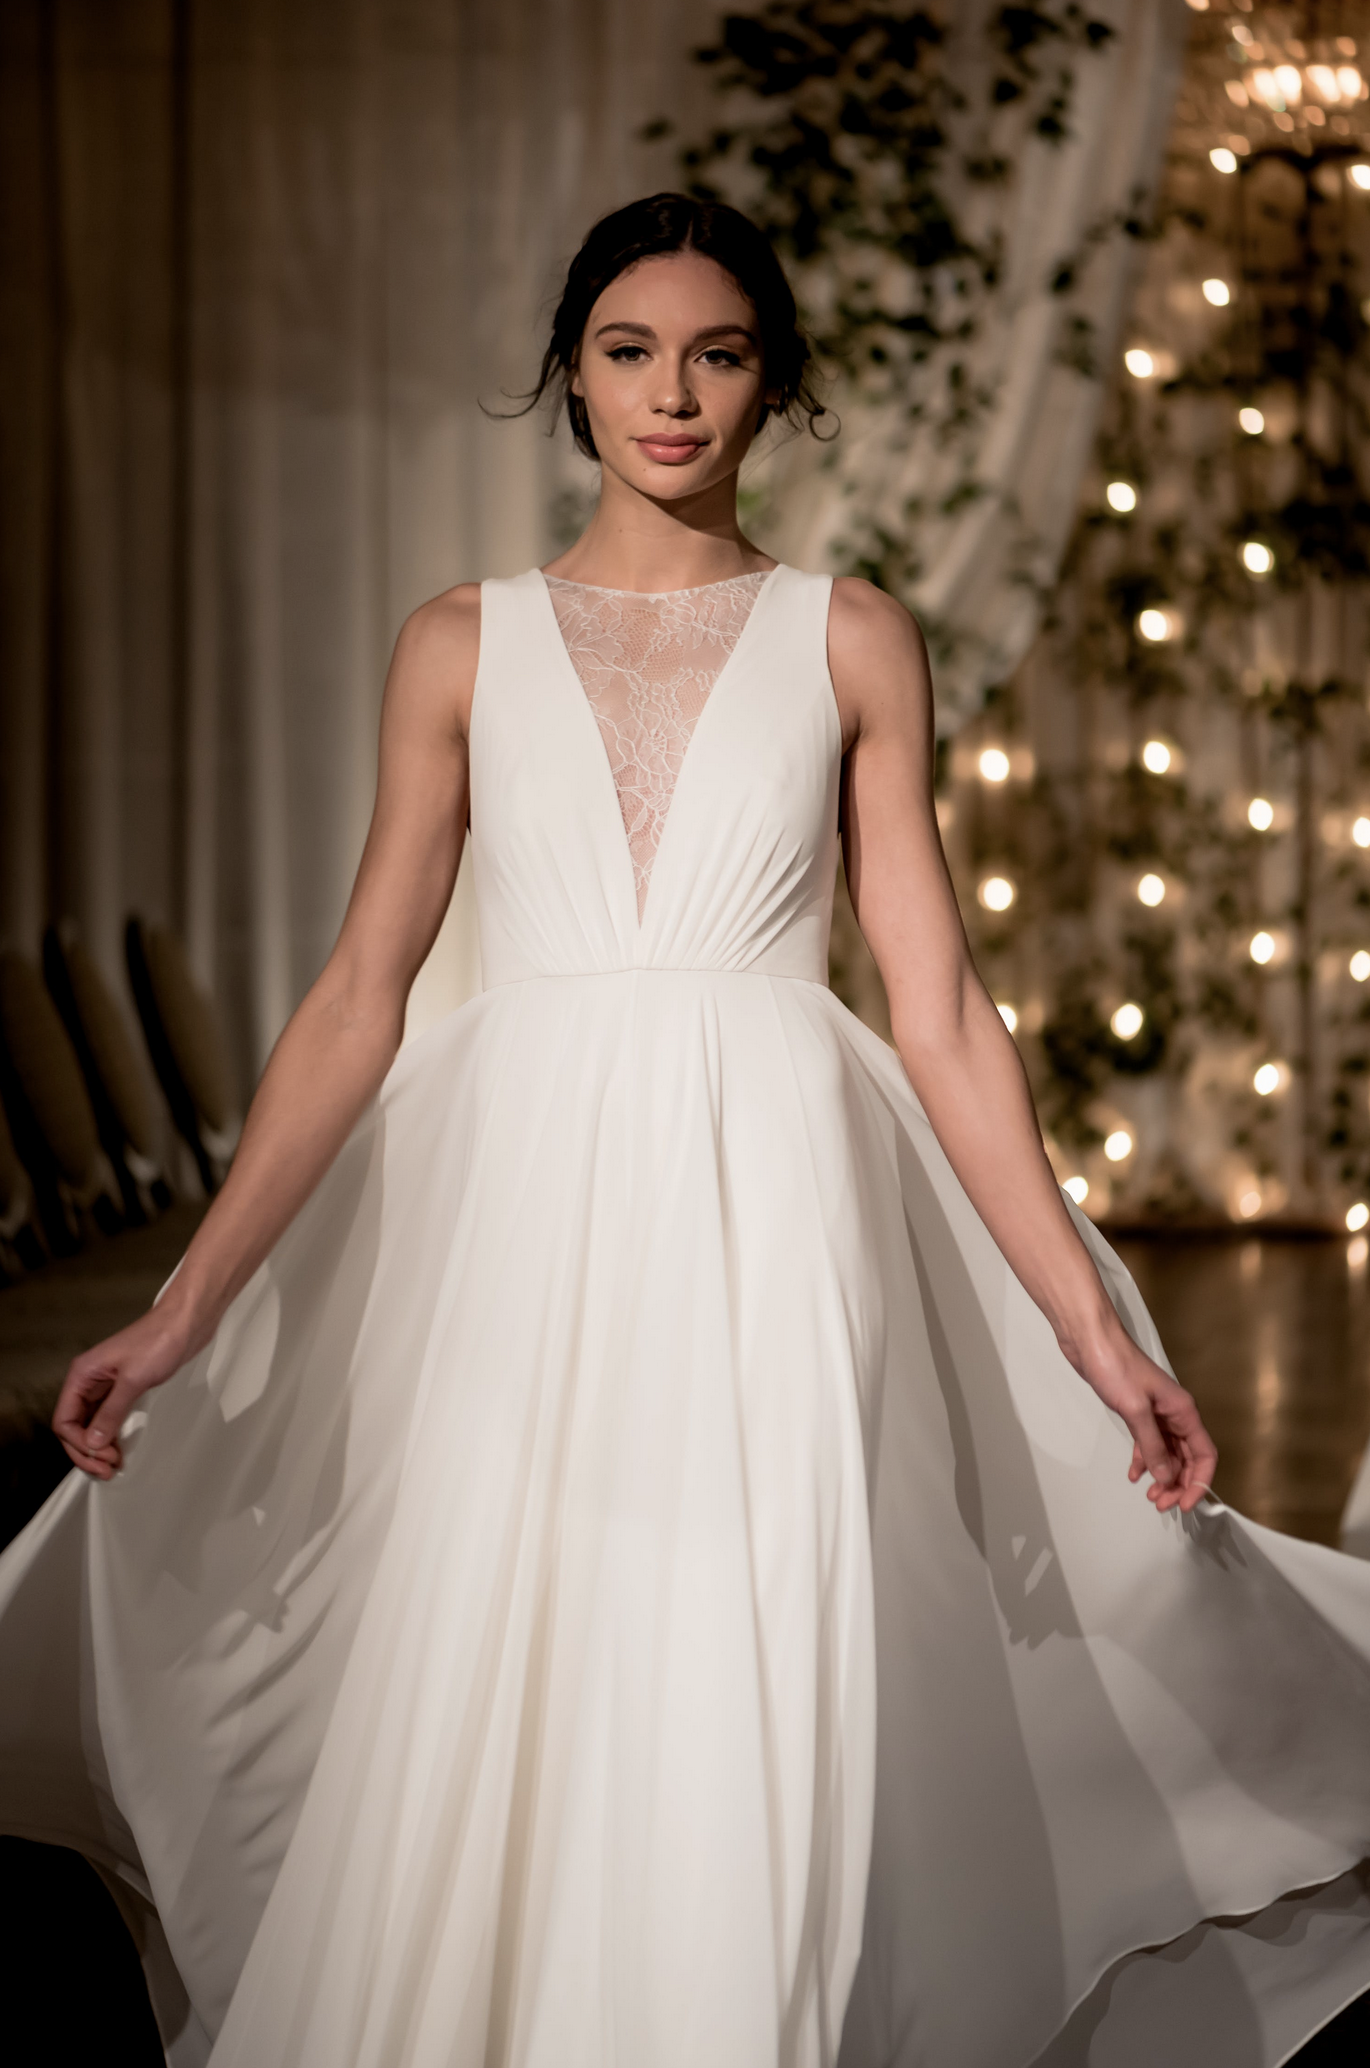 12fc29a85e The Fallon gown, part of our 'Jenny by Jenny Yoo' Bridal Collection,  features a plunging V-neck that elongates the neck and brings attention to  the smallest ...